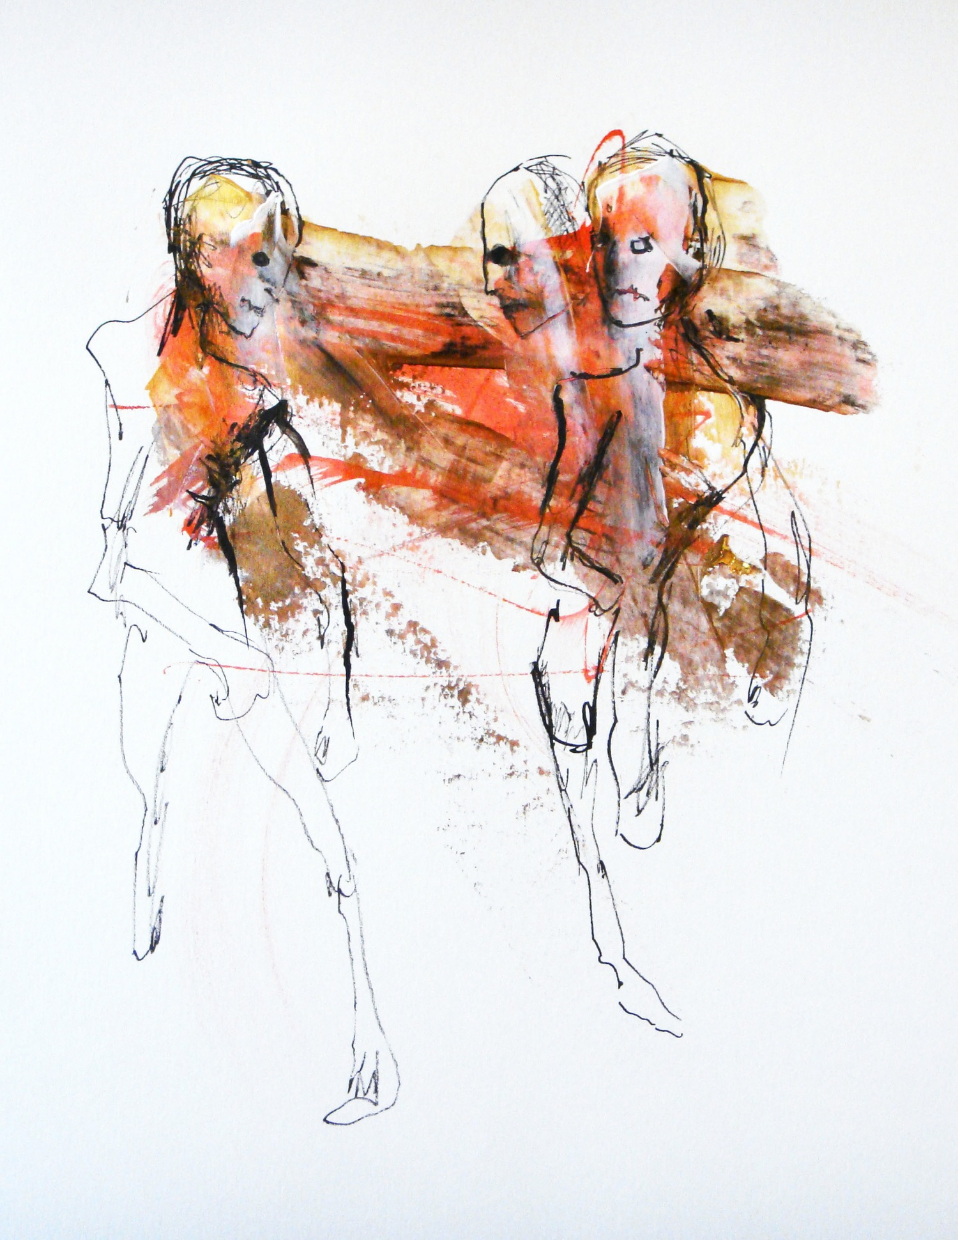 VARIATIONS ON THE HUMAN FIGURE #61  -  ink and acrylic on paper